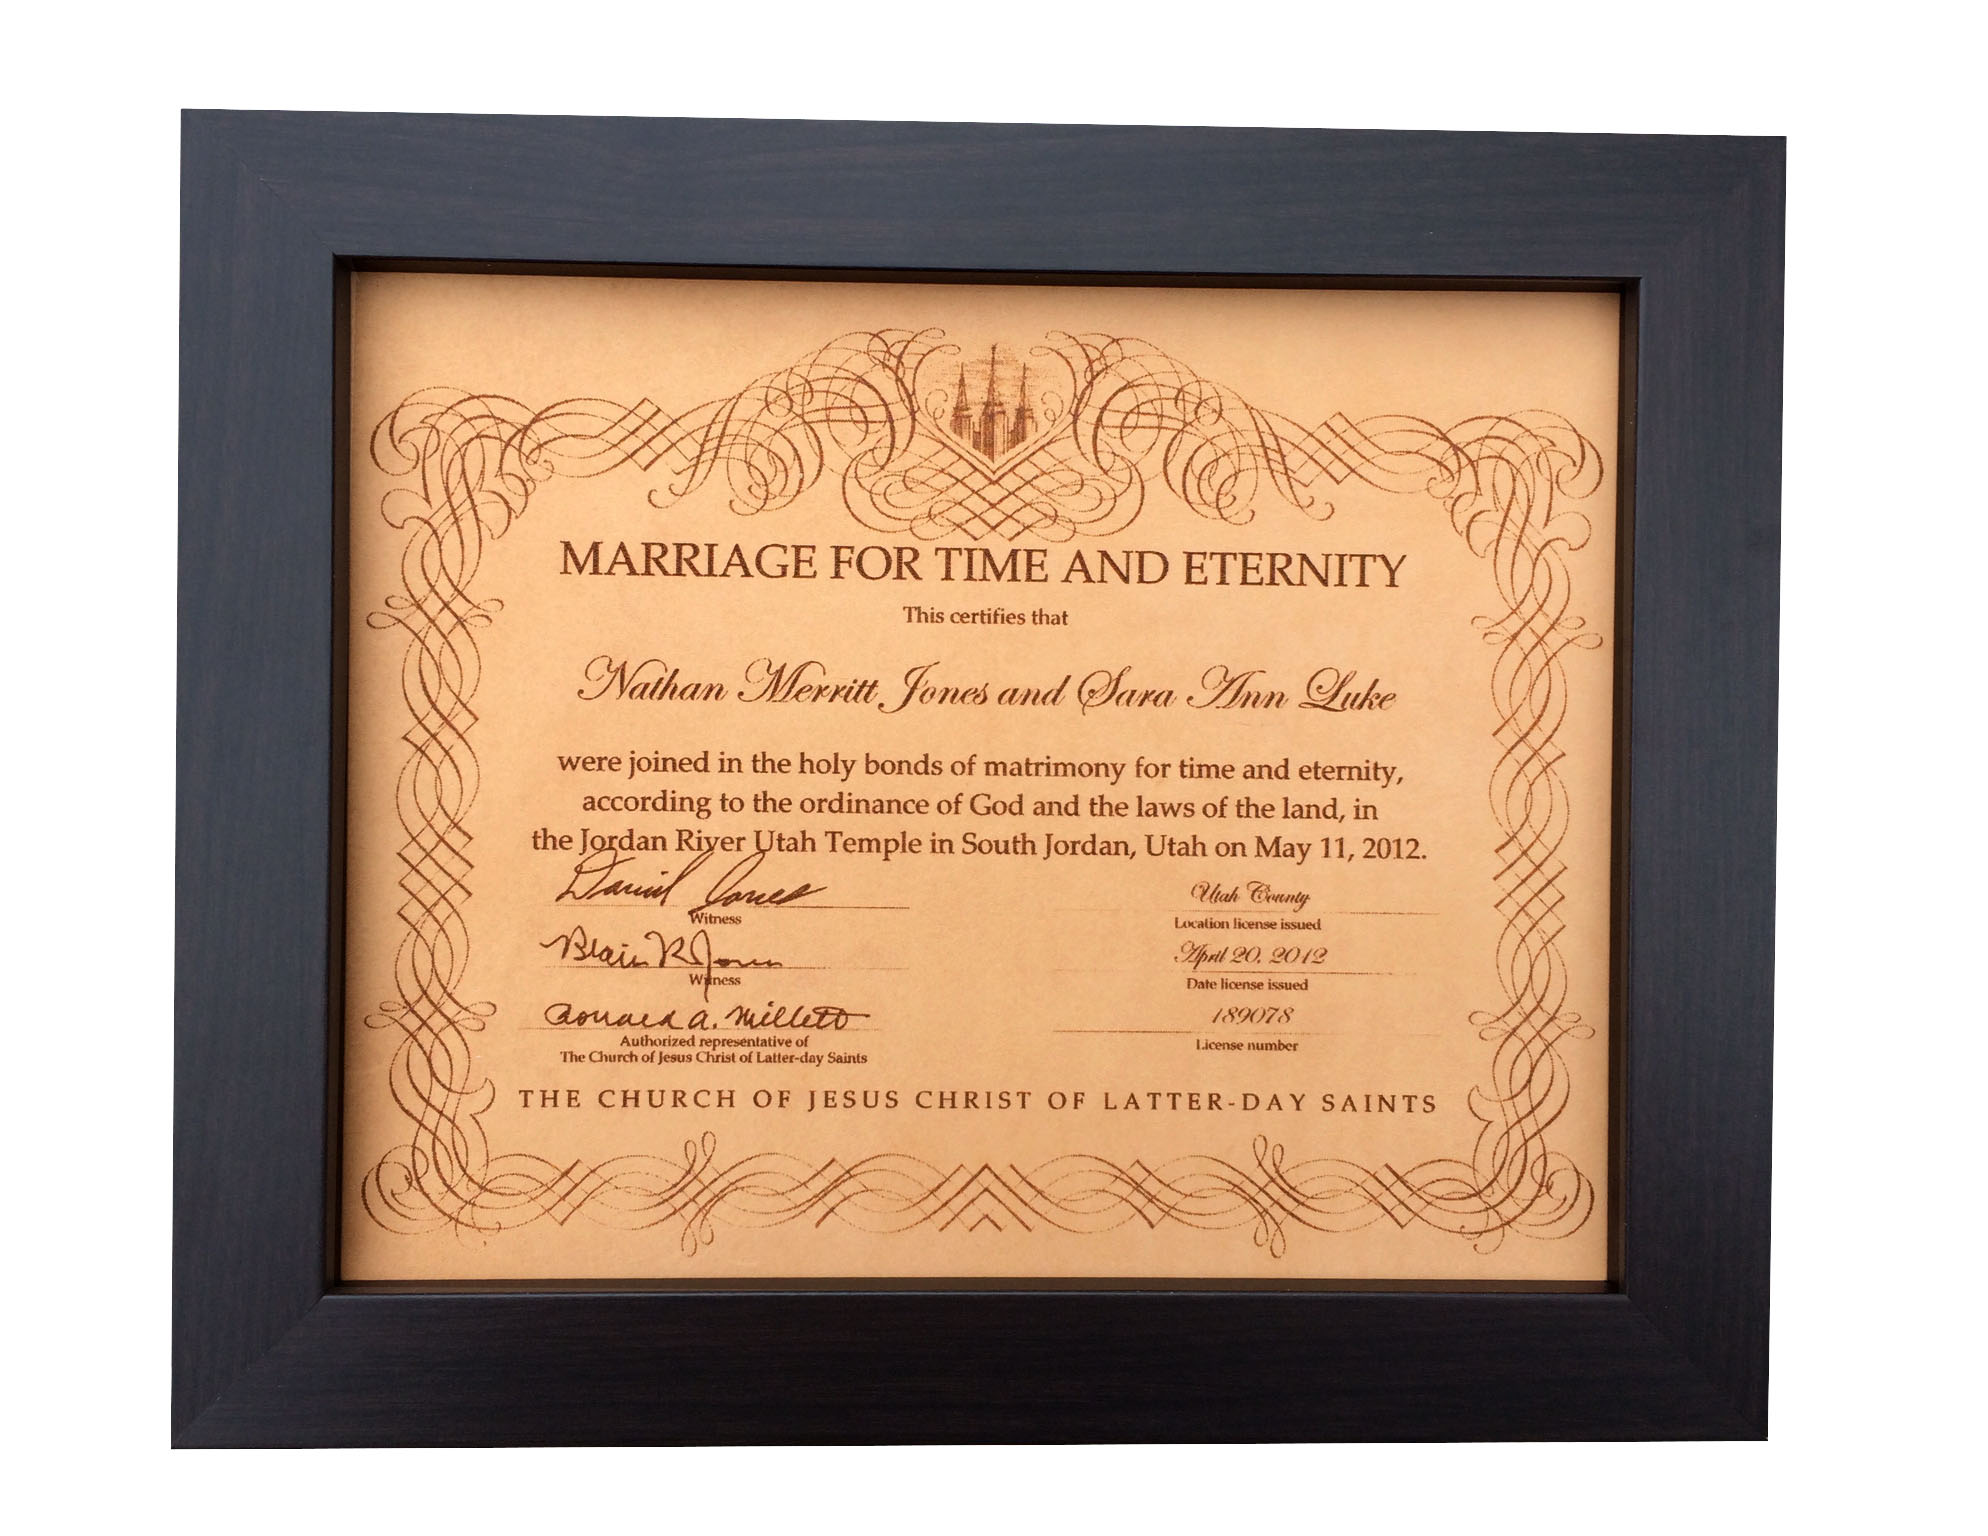 9th Year Wedding Anniversary Gifts: Leather Marriage Certificate Photo Engraving